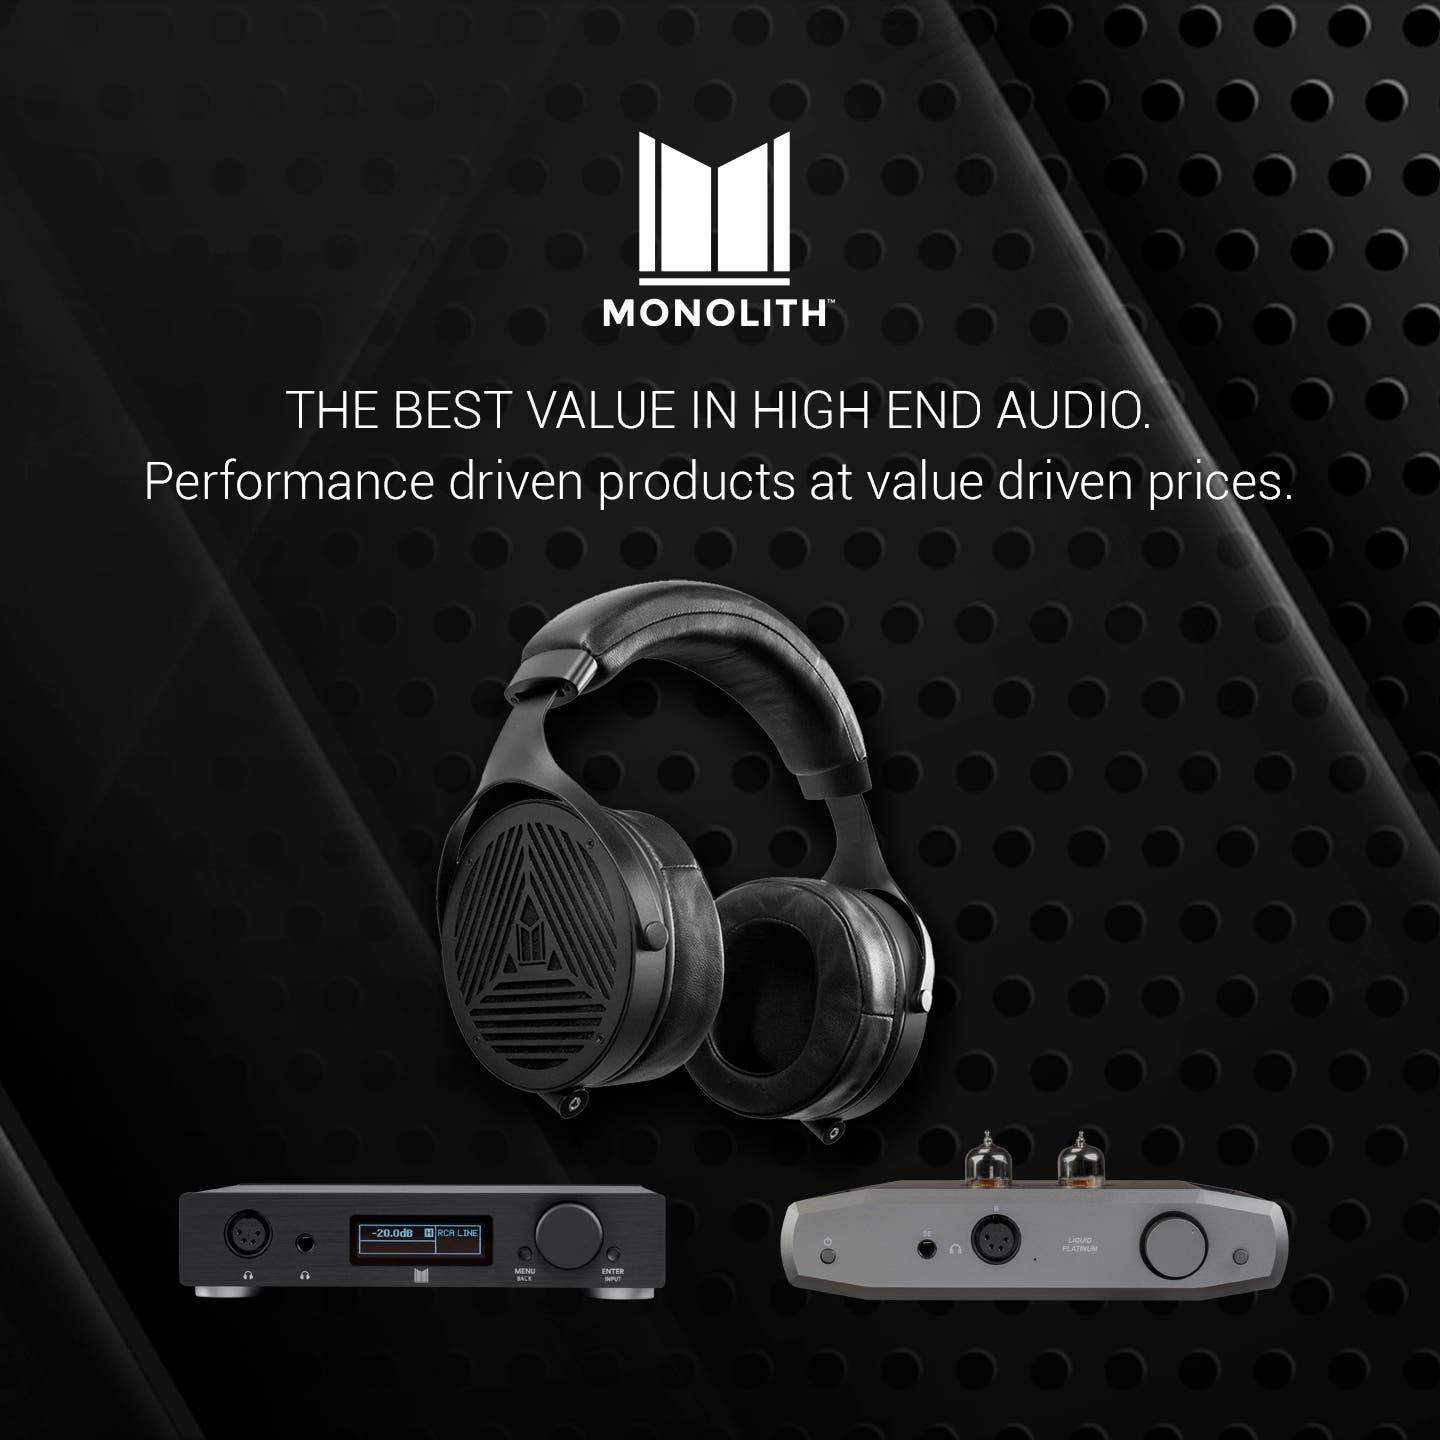 Monolith by Monoprice - The best value in high end audio. Performance driven products at value driven prices.